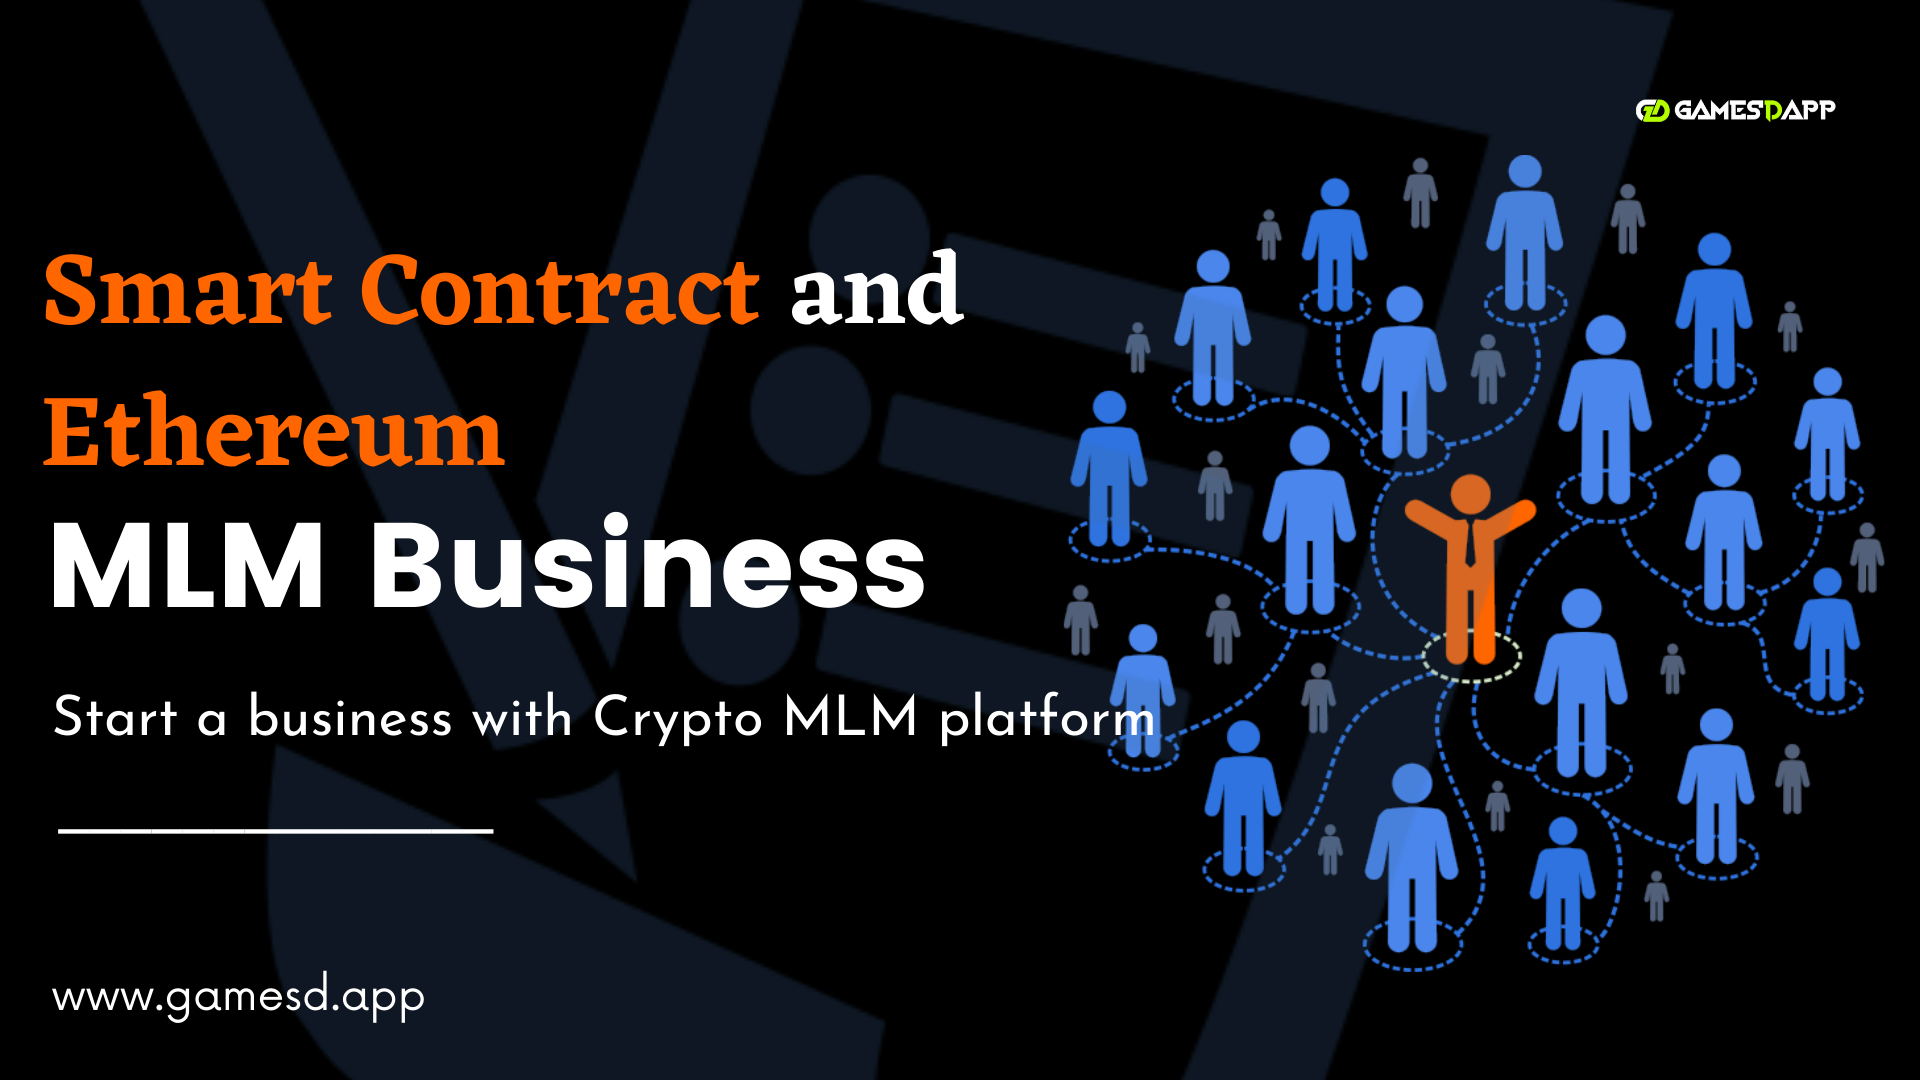 Start your MLM Business with Ethereum Dapp and Smartcontract